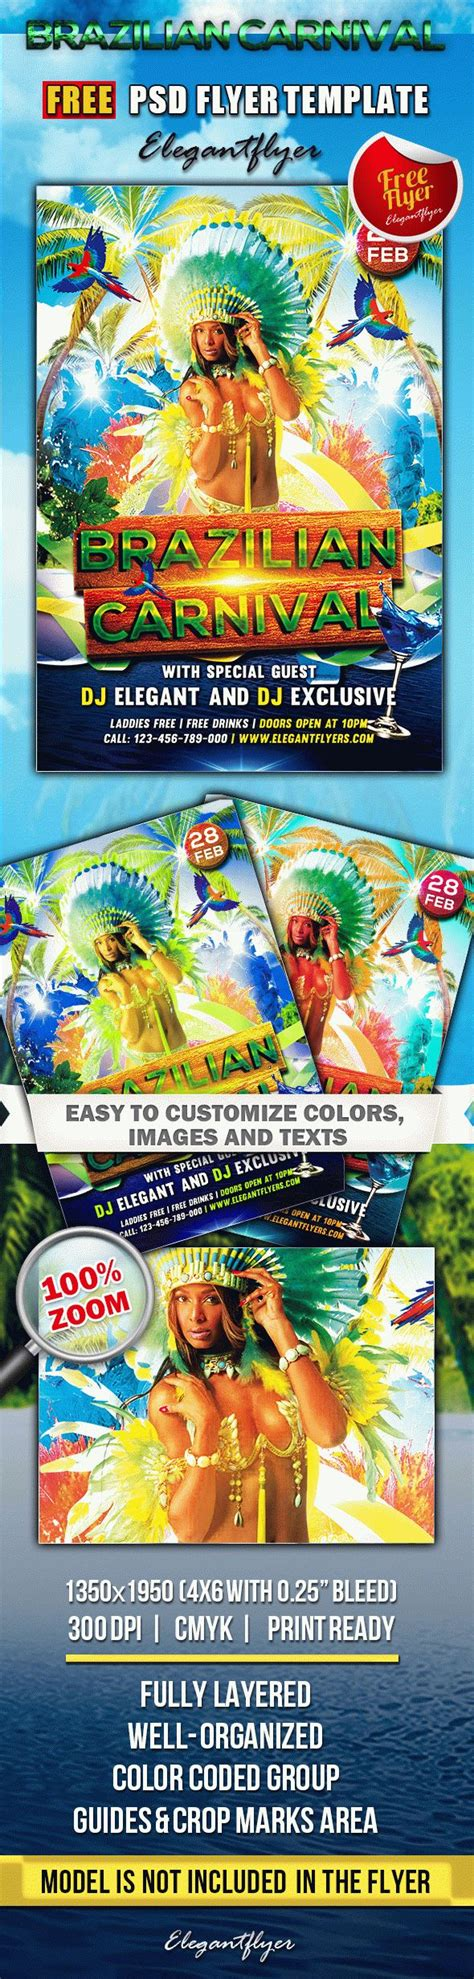 Brazilian Carnival Flyer Template by Brazilian Carnival Club And Party Free Flyer Psd